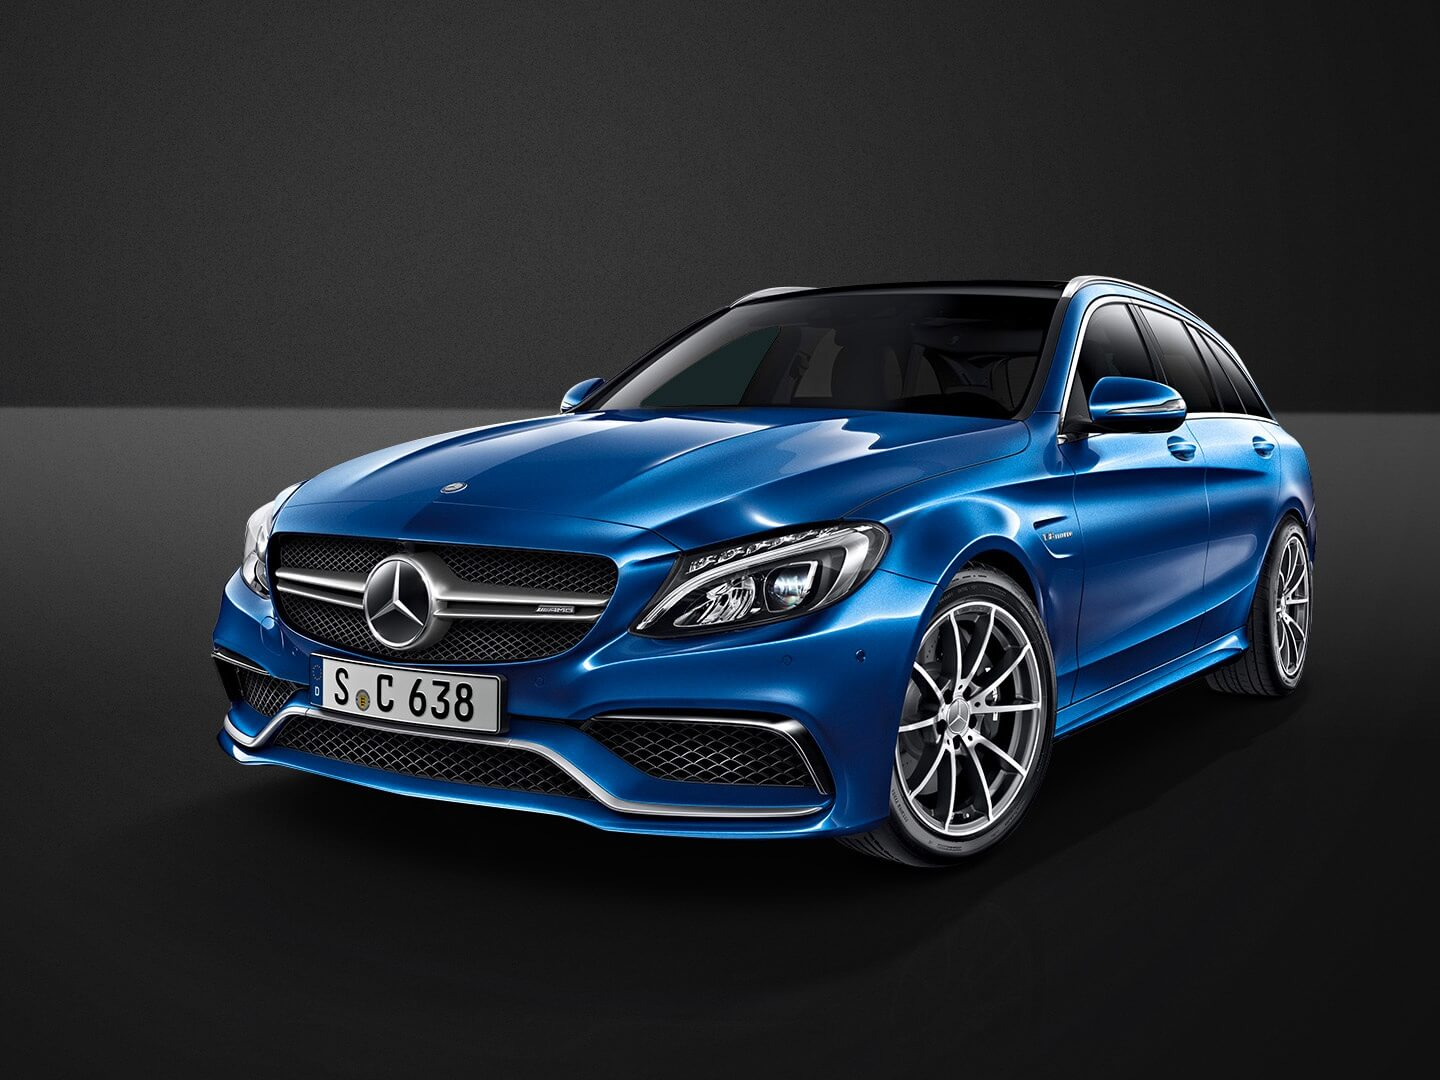 mercedes benz c63 amg t modell leasing f r 688 euro im. Black Bedroom Furniture Sets. Home Design Ideas